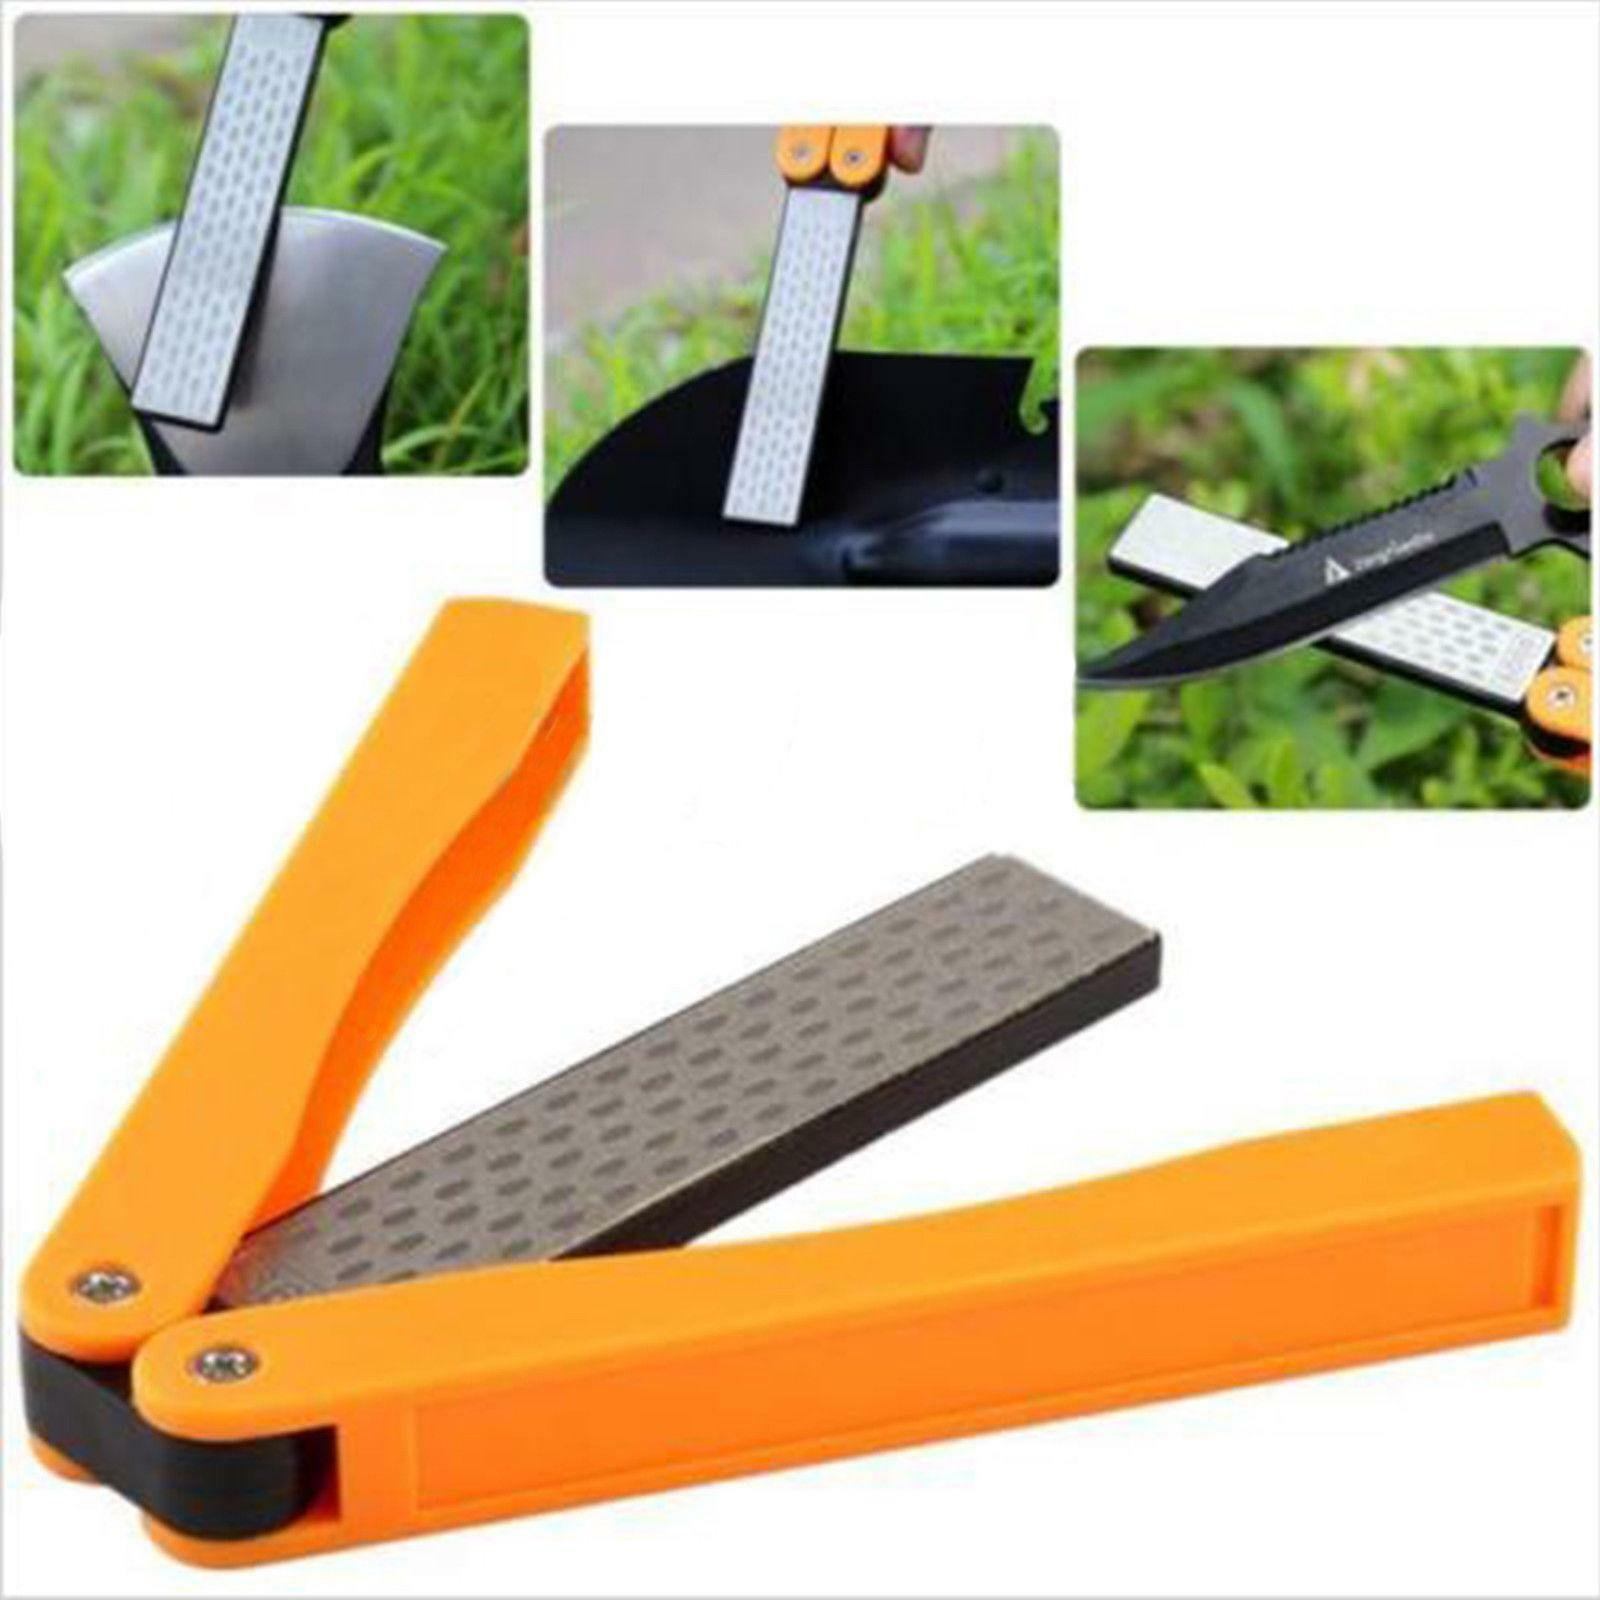 Amazing Sharpener Gadget Double Sided Fold Portable Pocket Camping Travel Gift